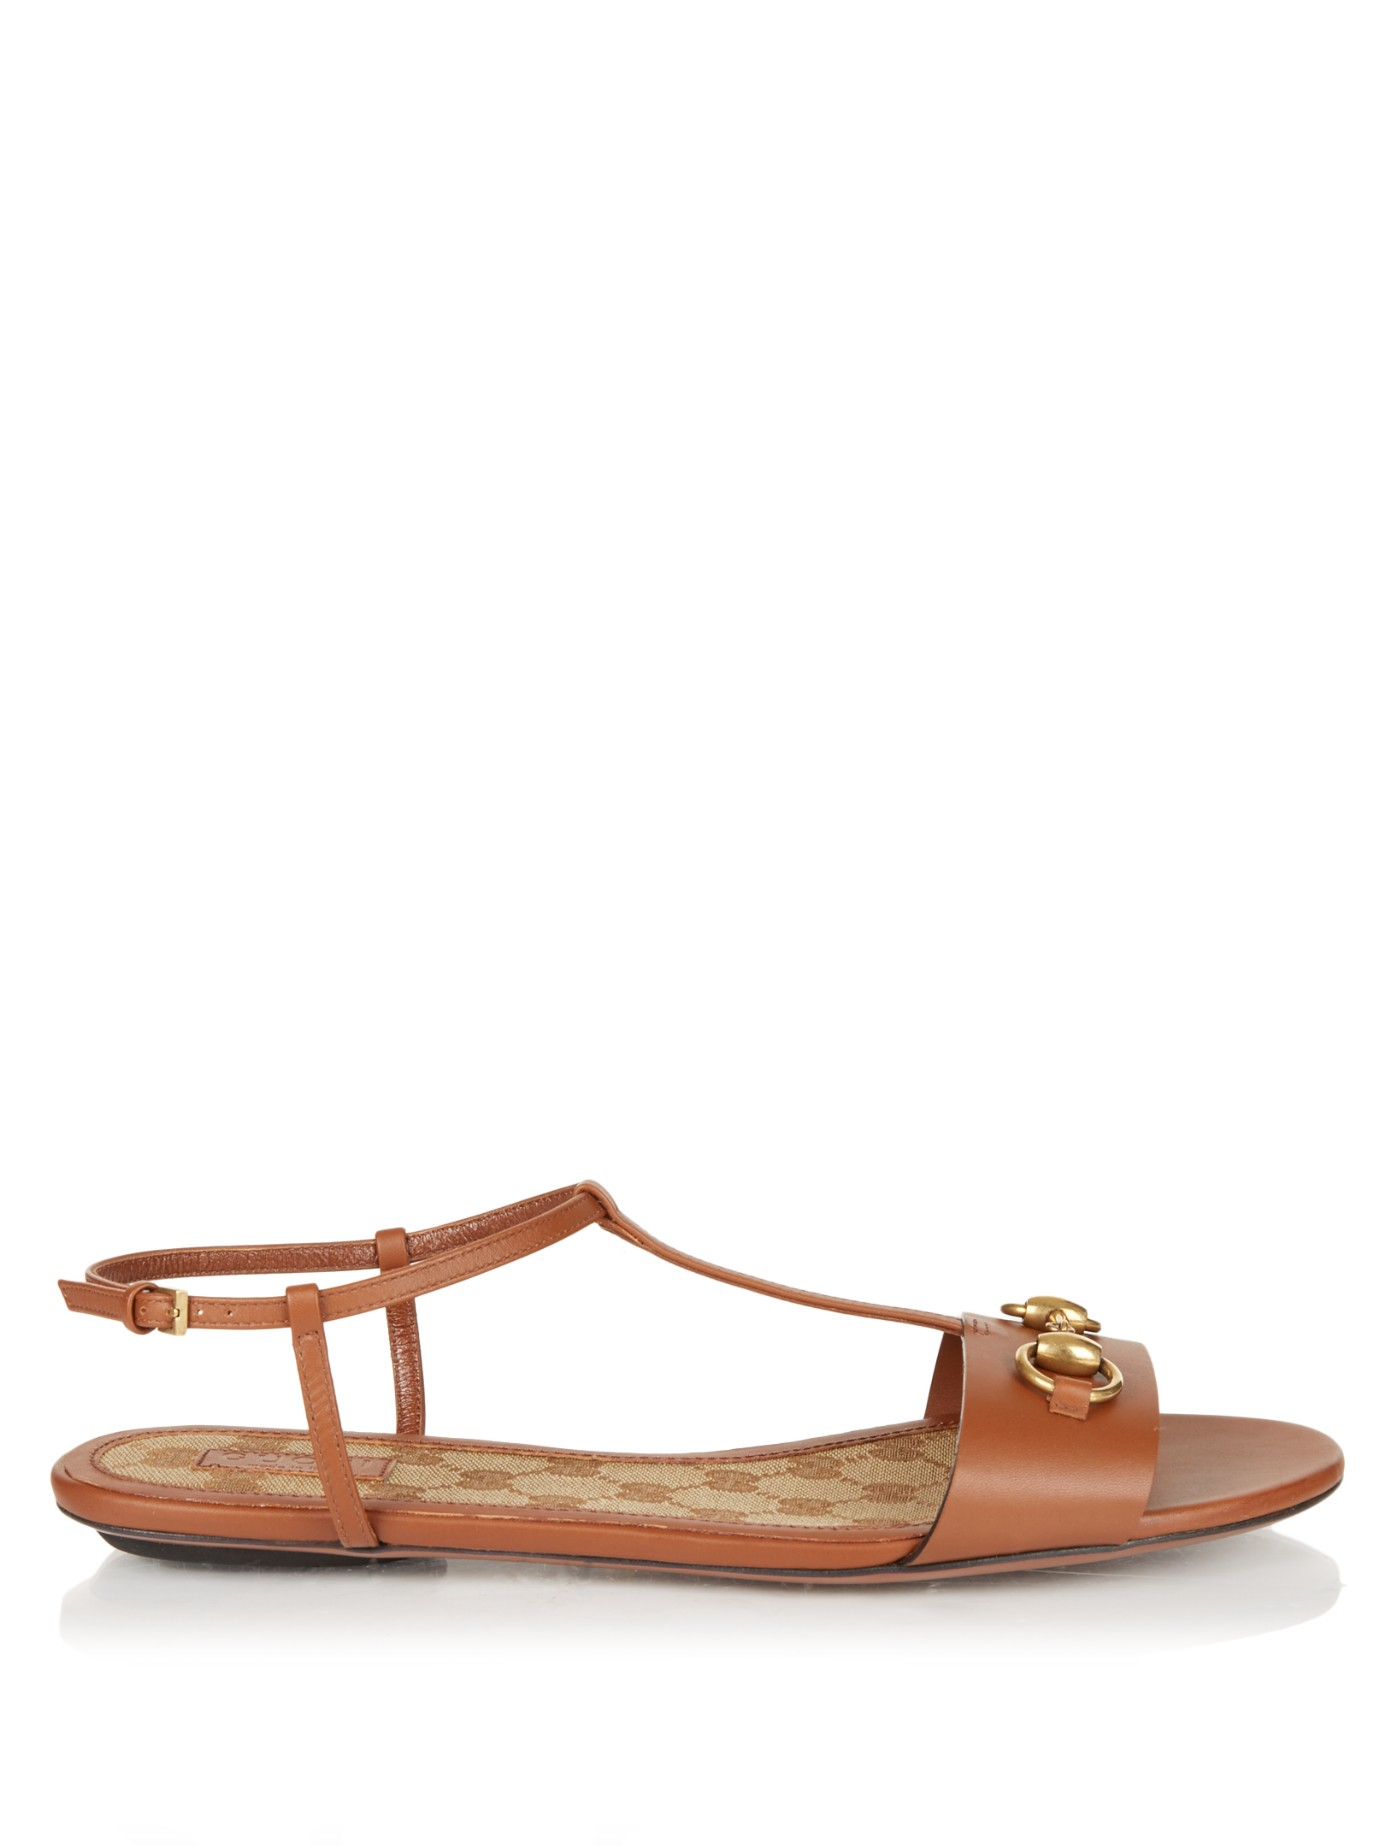 4f3fe7828 Lyst - Gucci Leather T-strap Sandal in Brown